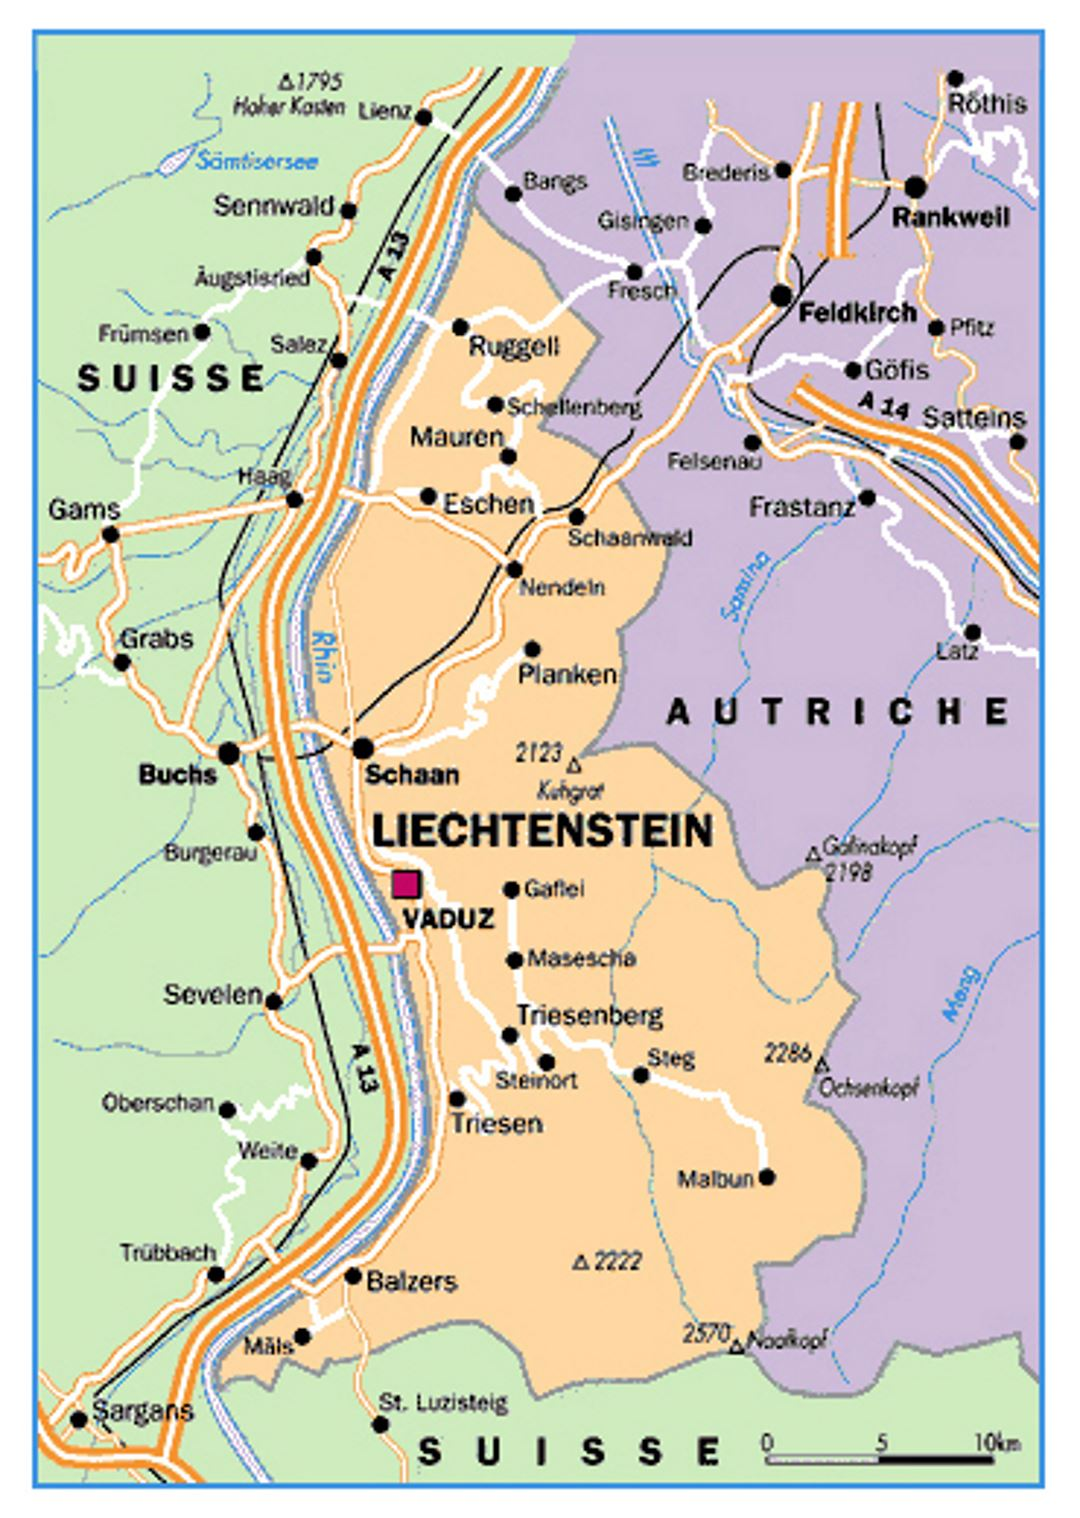 Liechtenstein Google Map   Driving Directions and Maps moreover  also File Liechtenstein in Europe   rivers  mini map  svg   Wikipedia  le likewise Where is Liechtenstein Located  Location map of Liechtenstein also Liechtenstein   Wikipedia moreover Small political map of Liechtenstein   Liechtenstein   Europe moreover Liechtenstein – Travel guide at Wikivoyage furthermore Large location map of Liechtenstein in Europe  Liechtenstein large likewise Where Is Liechtenstein Map Pdf – deltaadventure info additionally Vector Map of Liechtenstein   Blue   Free Vector Maps further File Flag map of Liechtenstein svg   Wikimedia  mons together with Maps of Liechtenstein   Collection of maps of Liechtenstein   Maps as well  additionally maps  Map Of Lichtenstein River Liechtenstein Located World  Map Of furthermore Liechtenstein Maps   Printable Maps of Liechtenstein for Download besides Map of Liechtenstein  Terrain  area and outline maps of. on liechtenstein map